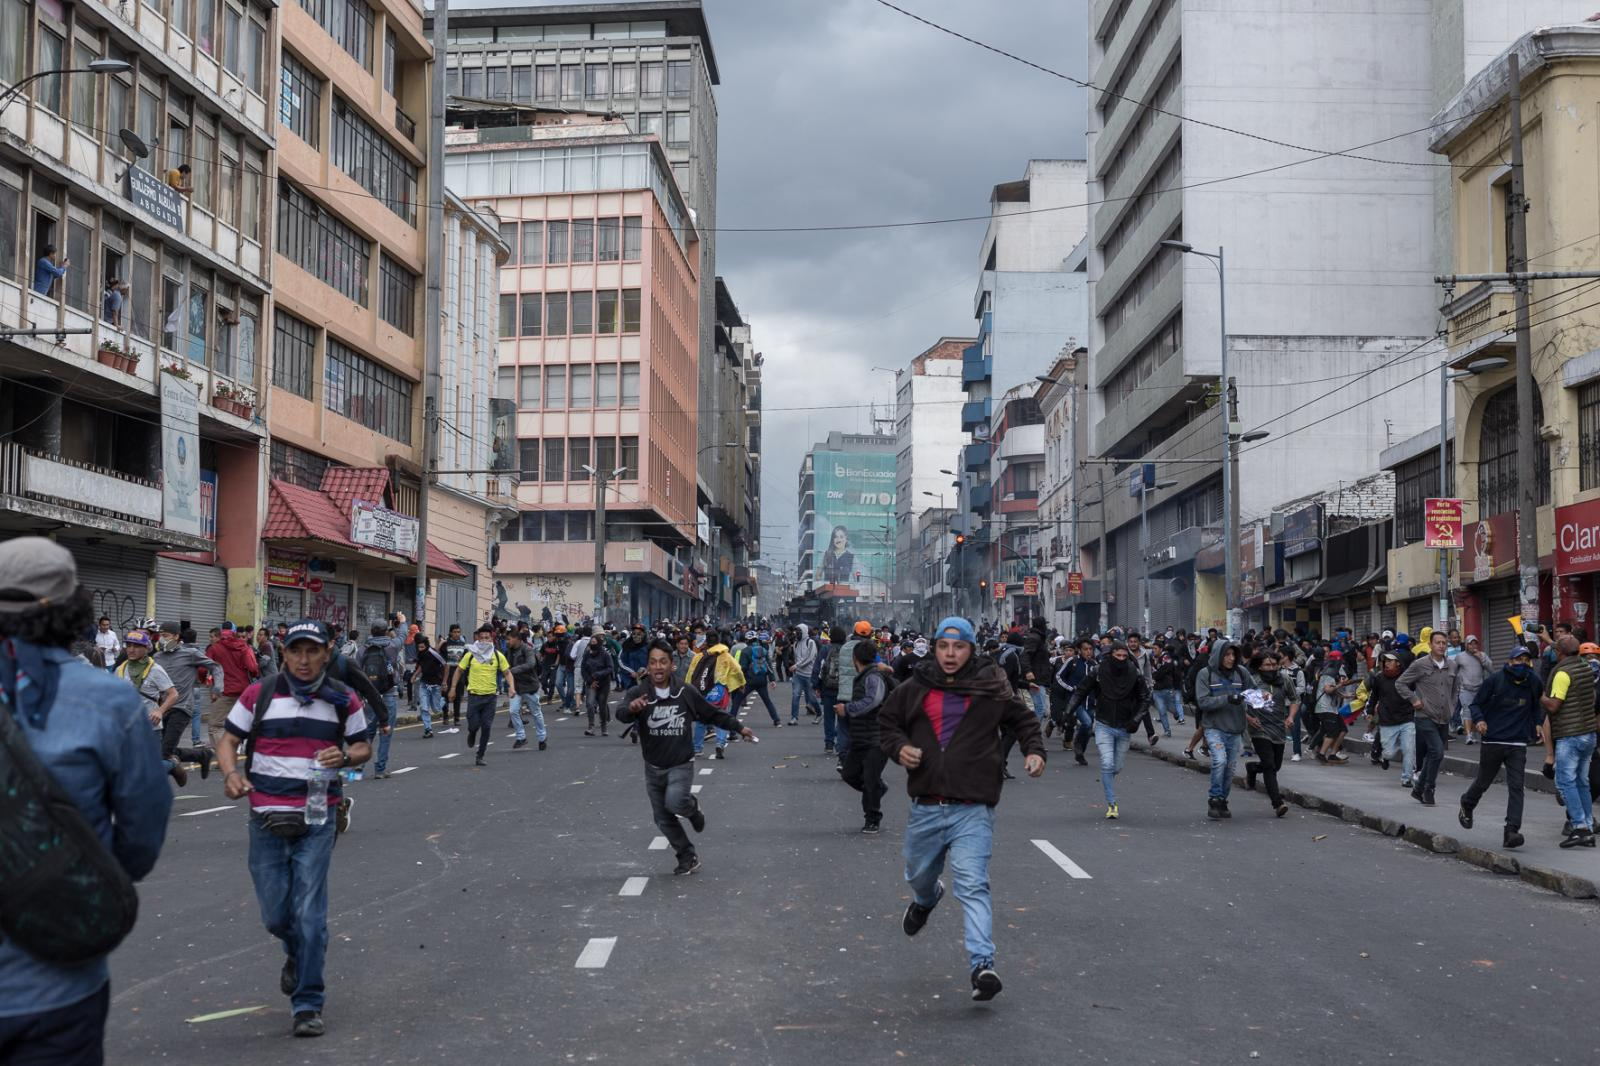 Demonstrators run along 10 de Agosto Avenue on the afternoon of October 4, 2019, in response to the arrival of anti-riot squads of the national police. The social outburst of those weeks showed the new control mechanisms of the police force. Quito, Ecuador.